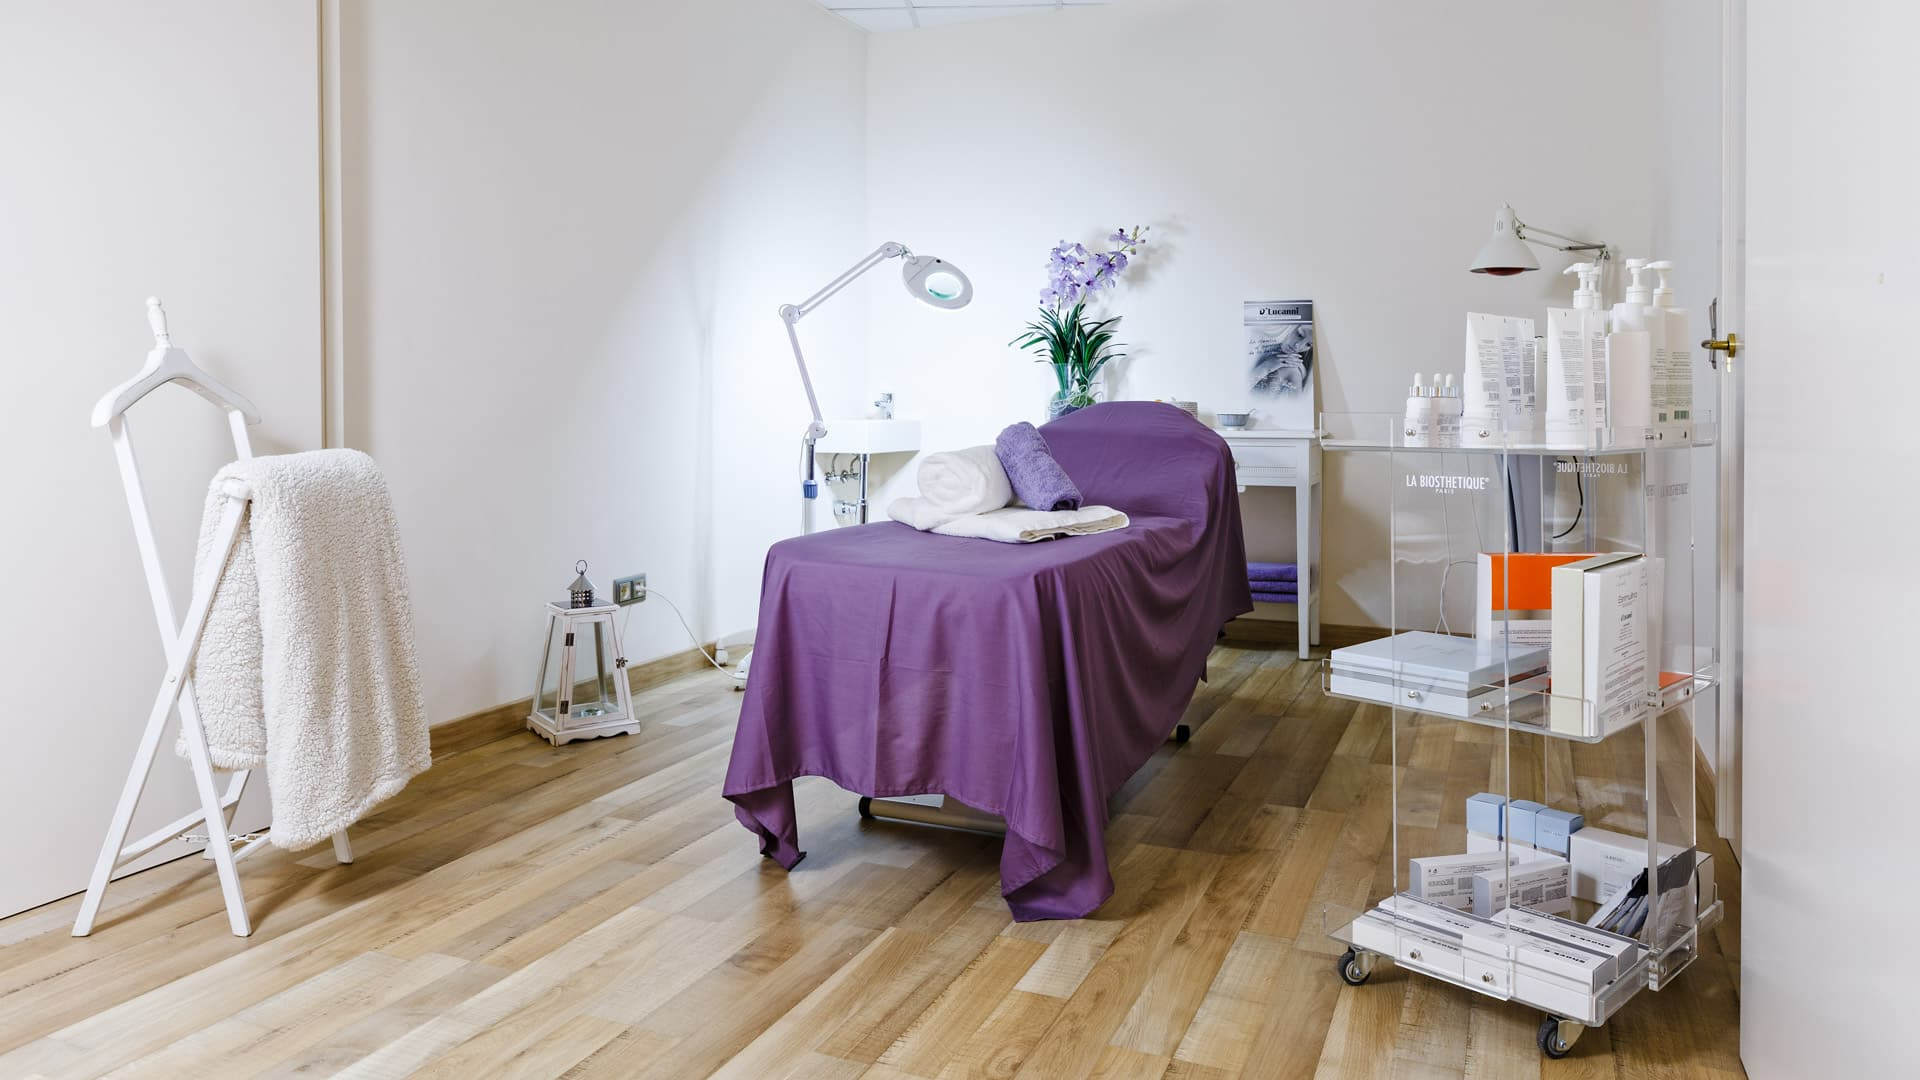 Elle est Belle | Manual therapies and body treatments